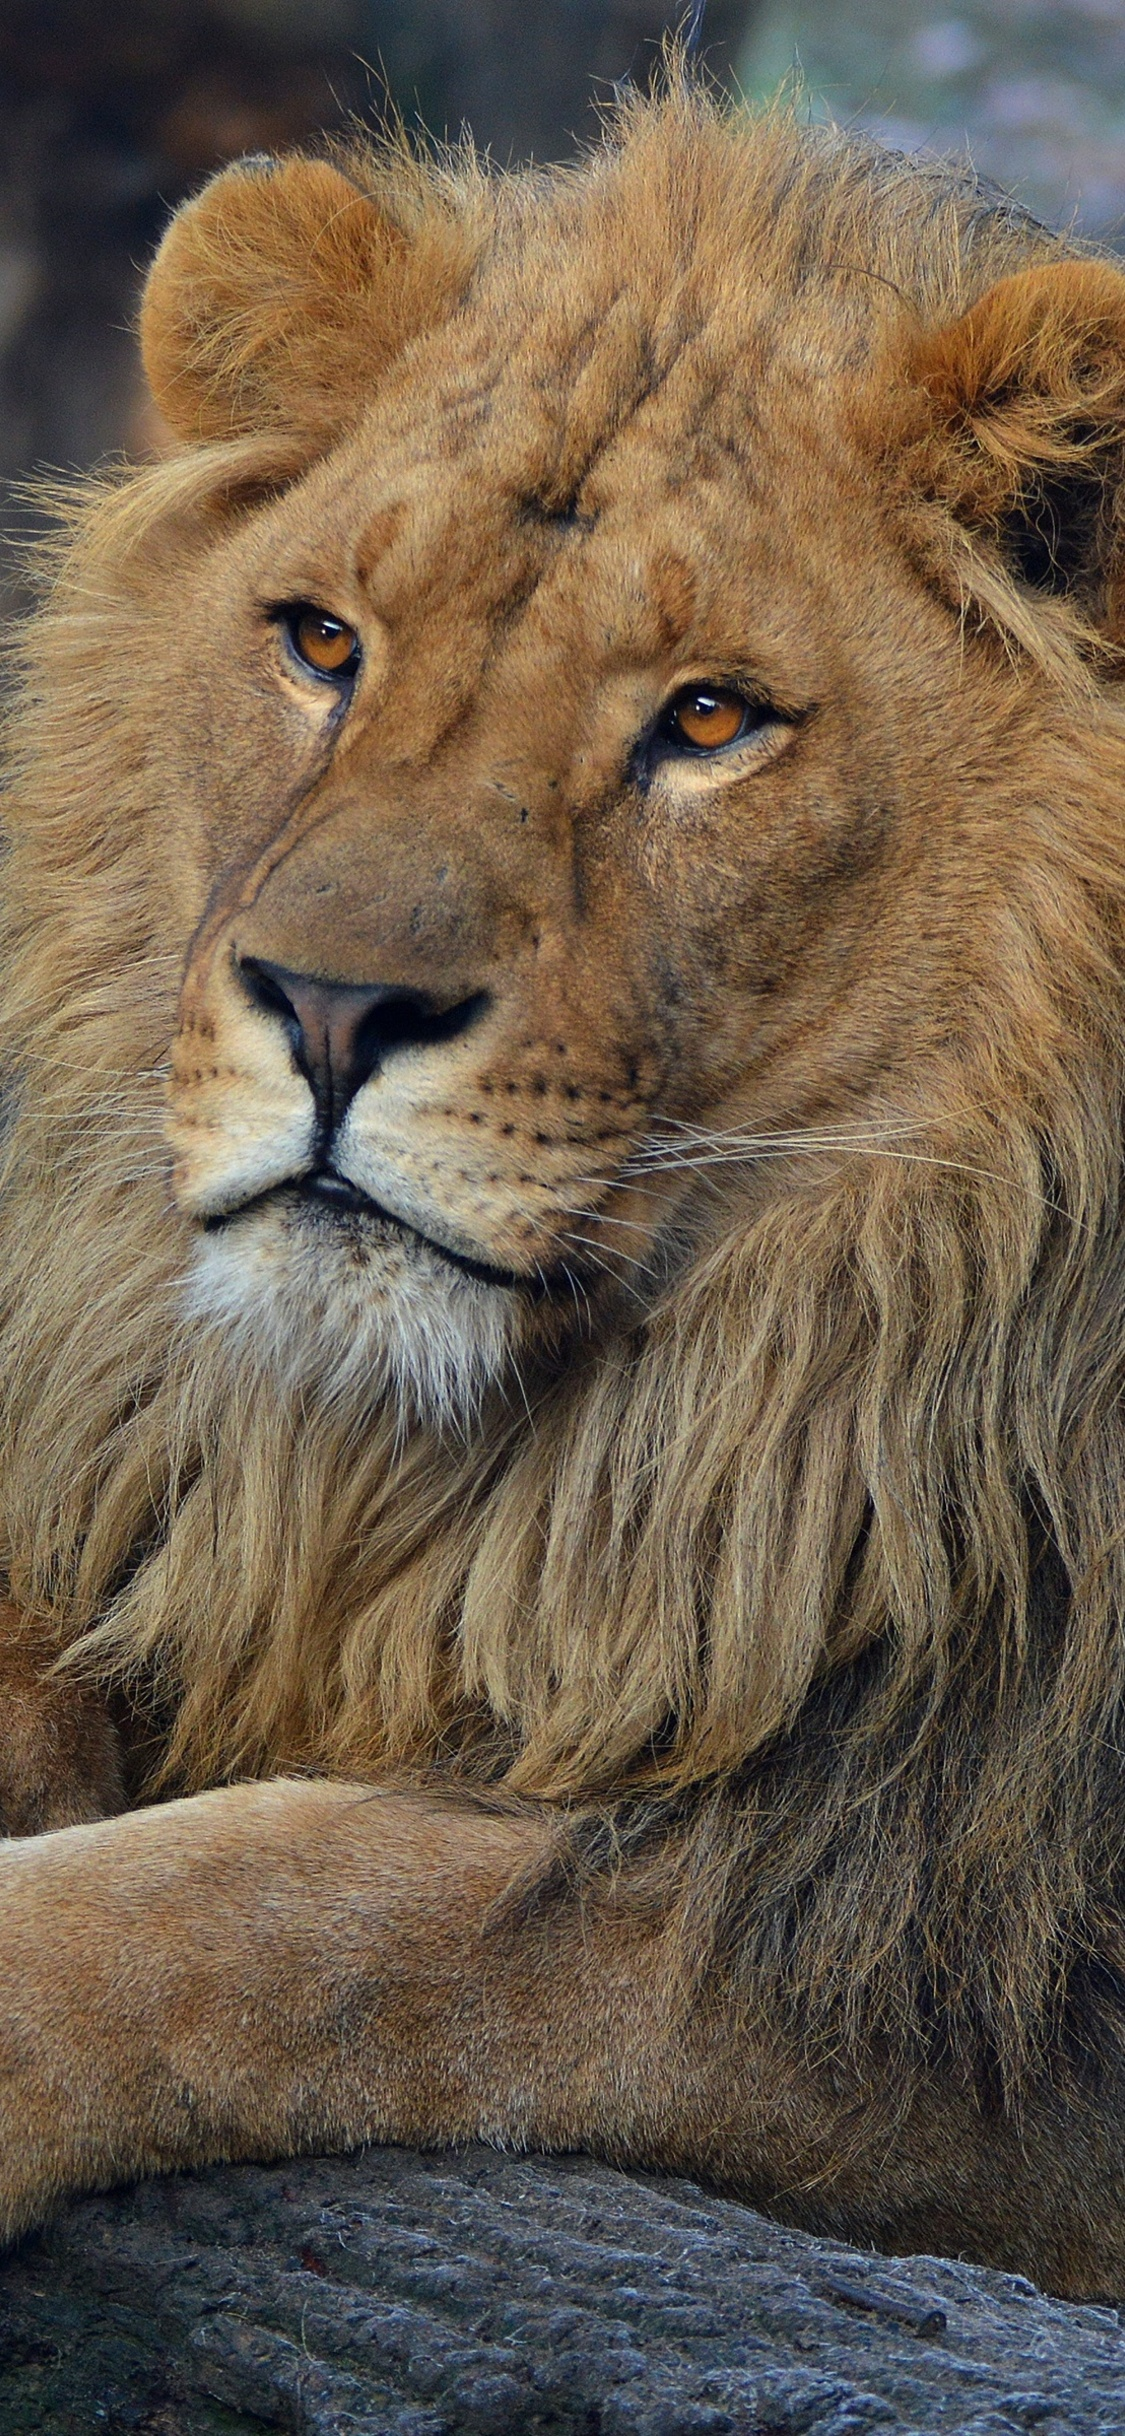 Lion Wallpaper Hd Iphone X